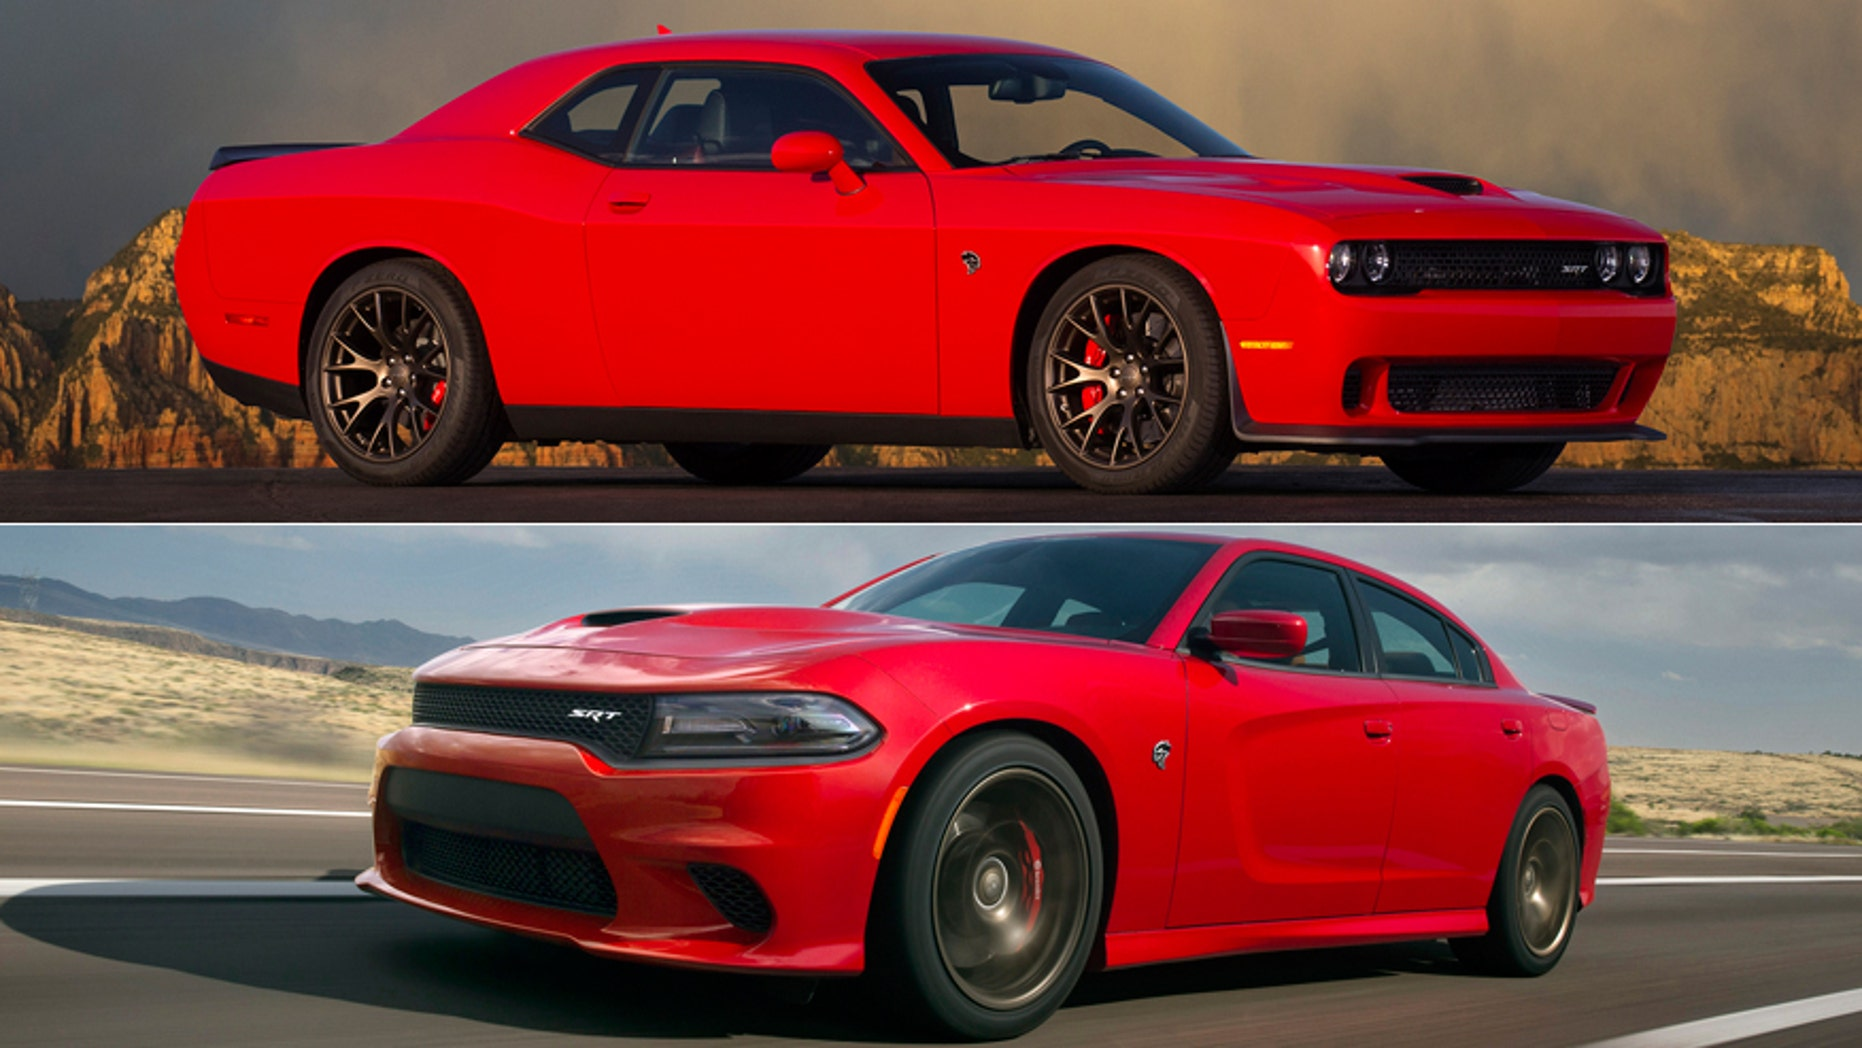 Most Powerful American Cars-2015 Dodge Challenger/Charger SRT Hellcat